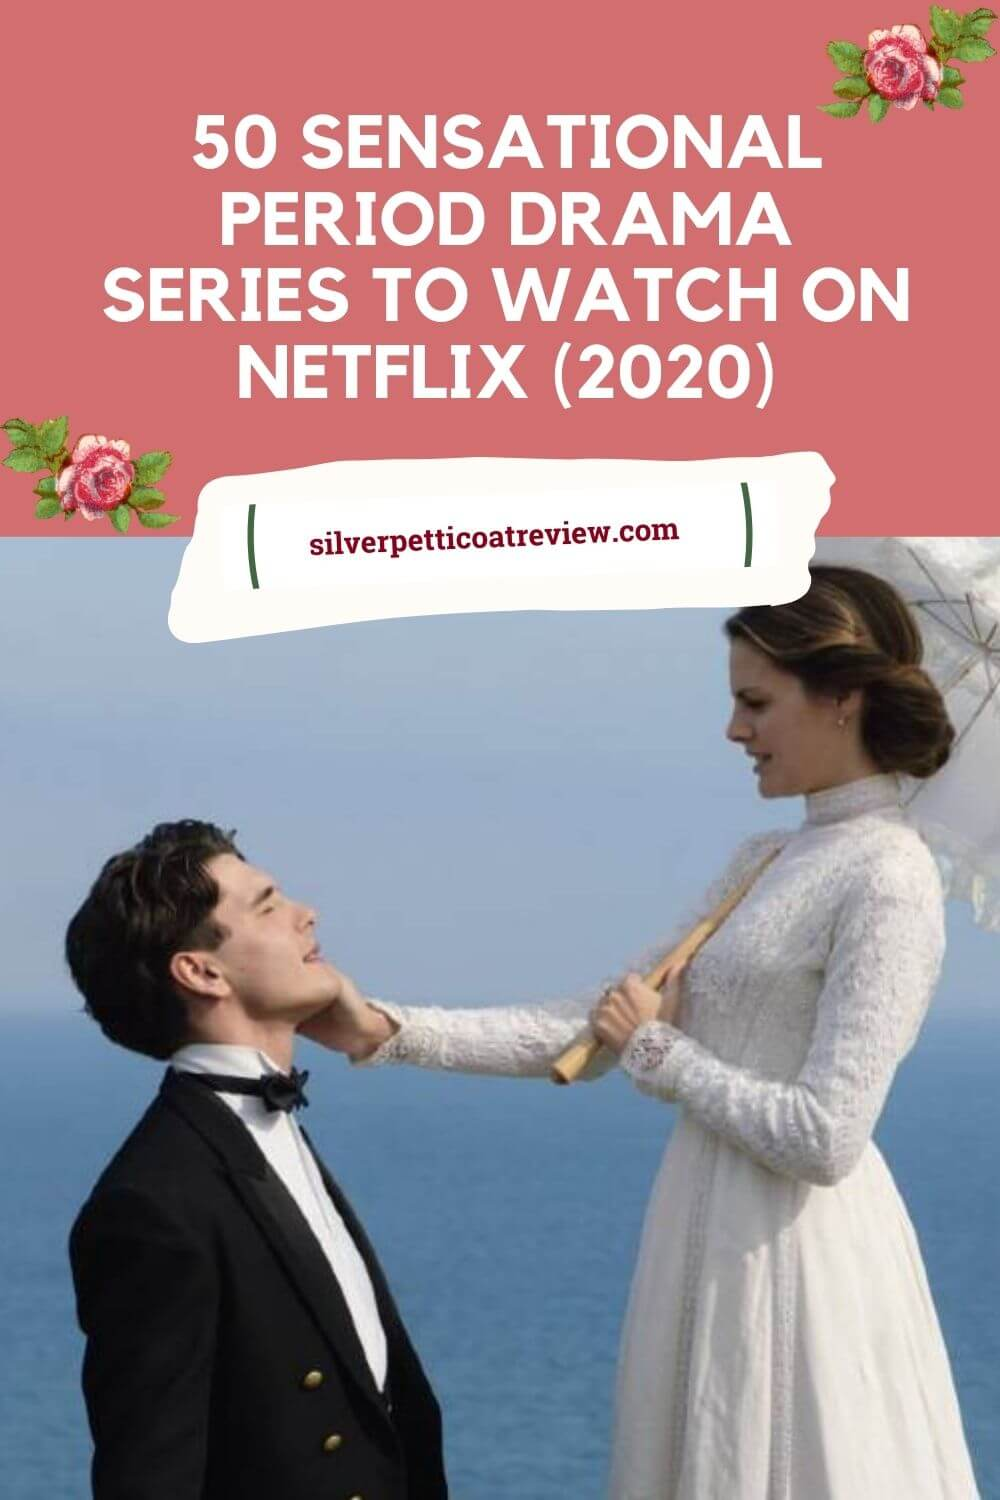 50 Sensational Period Dramas to Watch on Netflix – (2020) - Pinterest image